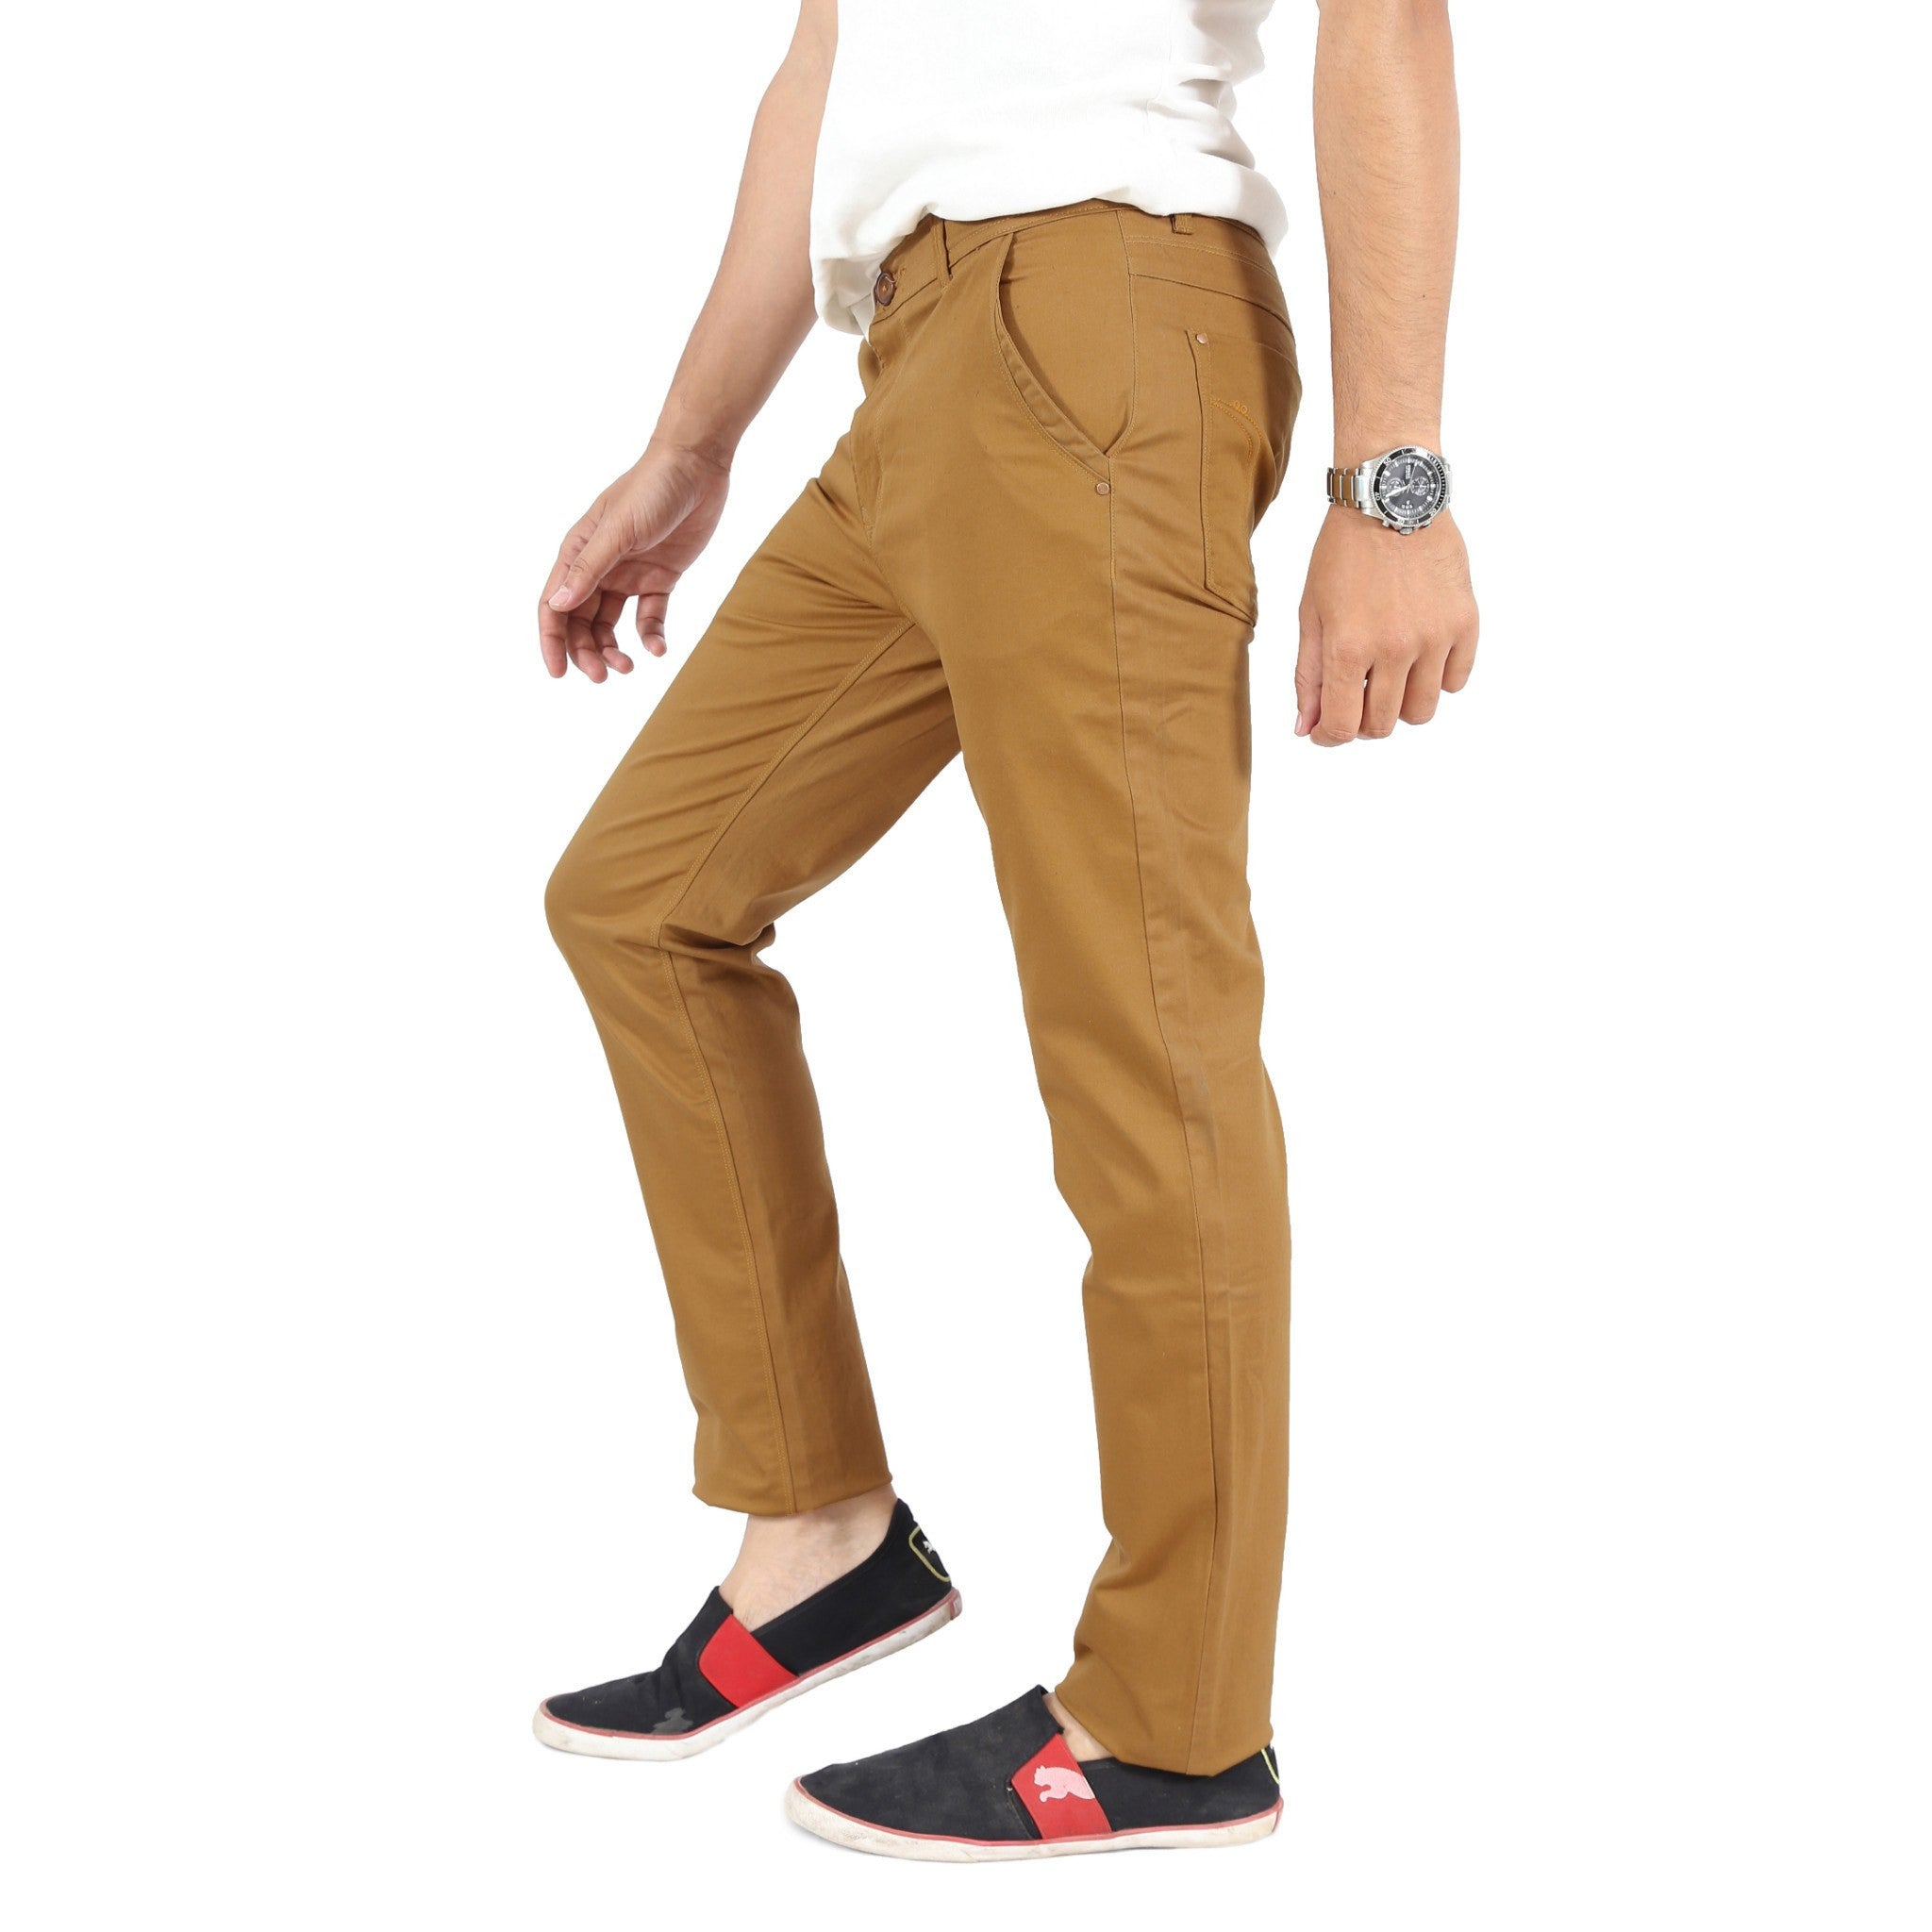 Uber Khaki Cotton Twill Elastene Trouser side view